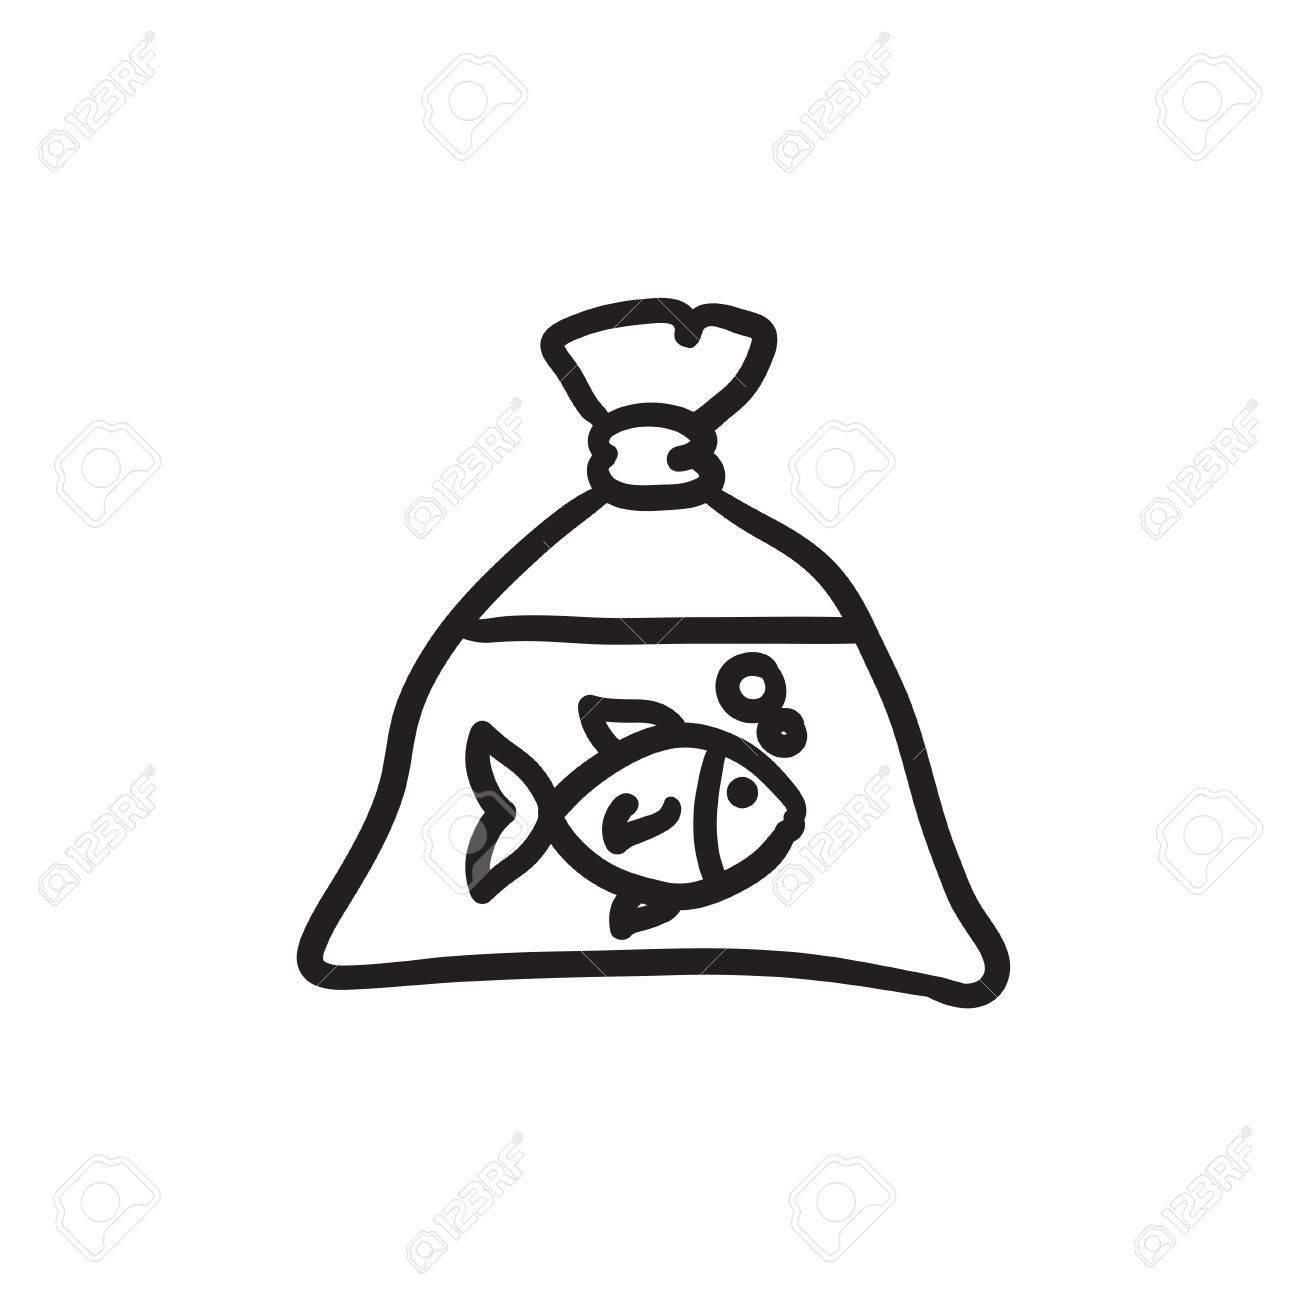 1300x1300 Fish In Plastic Bag Sketch Icon. Royalty Free Cliparts, Vectors